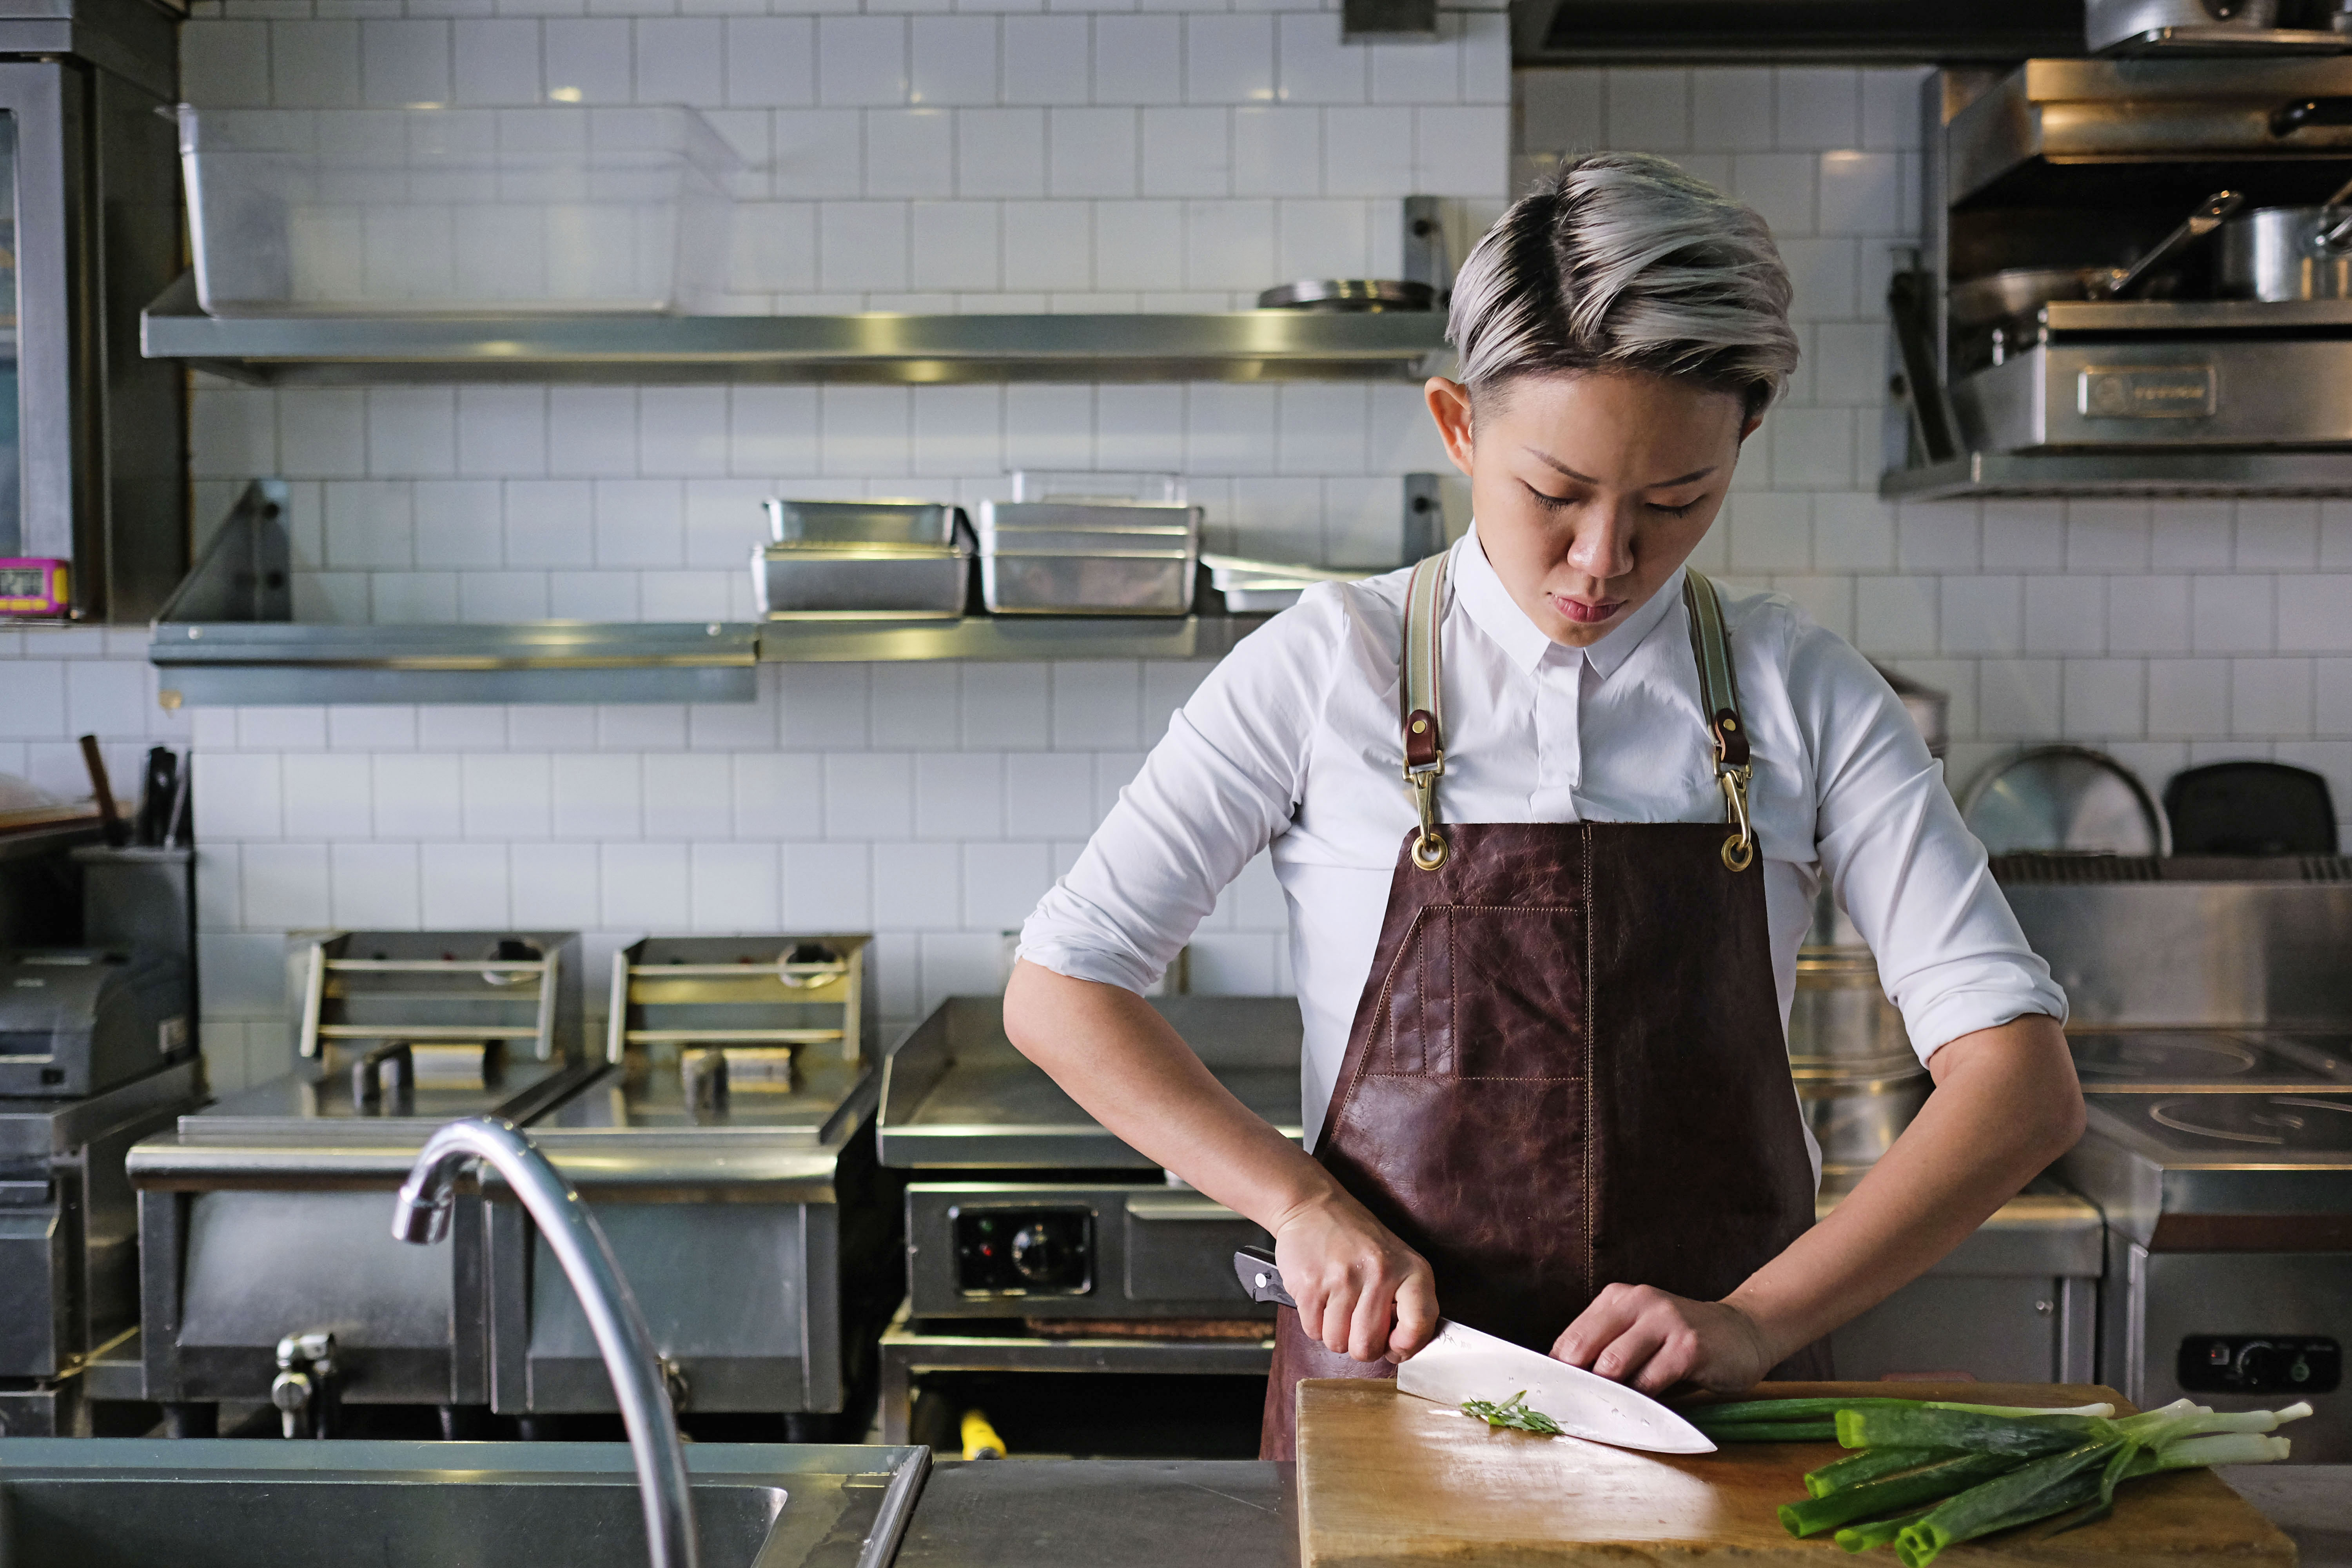 May Chow: Chef Interview